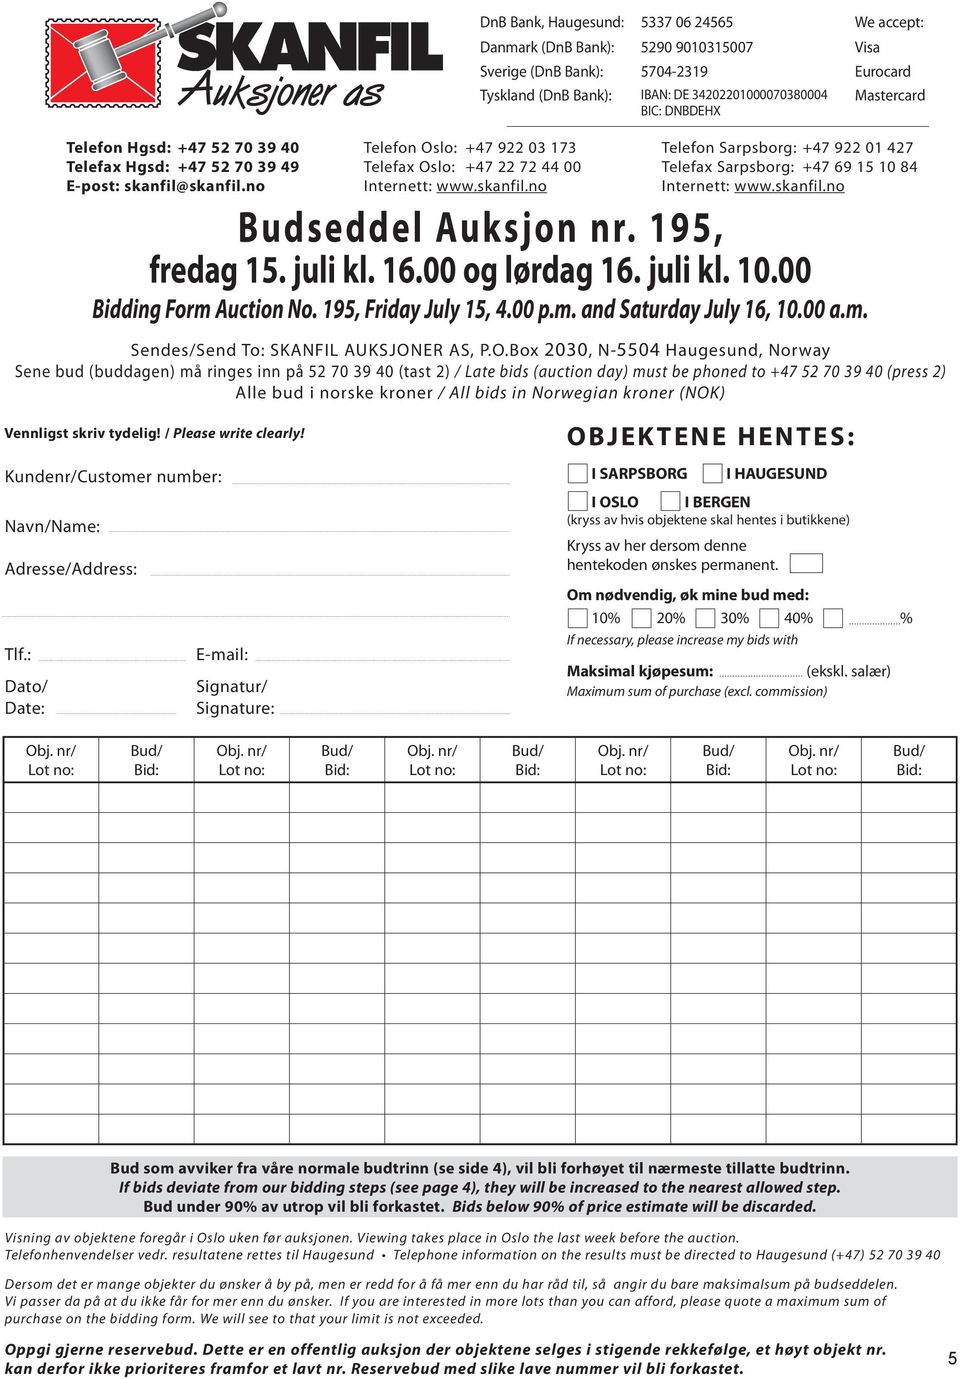 skanfil.no Budseddel Auksjon nr. 195, fredag 15. juli kl. 16.00 og lørdag 16. juli kl. 10.00 Bidding Form Auction No. 195, Friday July 15, 4.00 p.m. and Saturday July 16, 10.00 a.m. Sendes/Send To: SKANFIL Auksjoner AS, P.